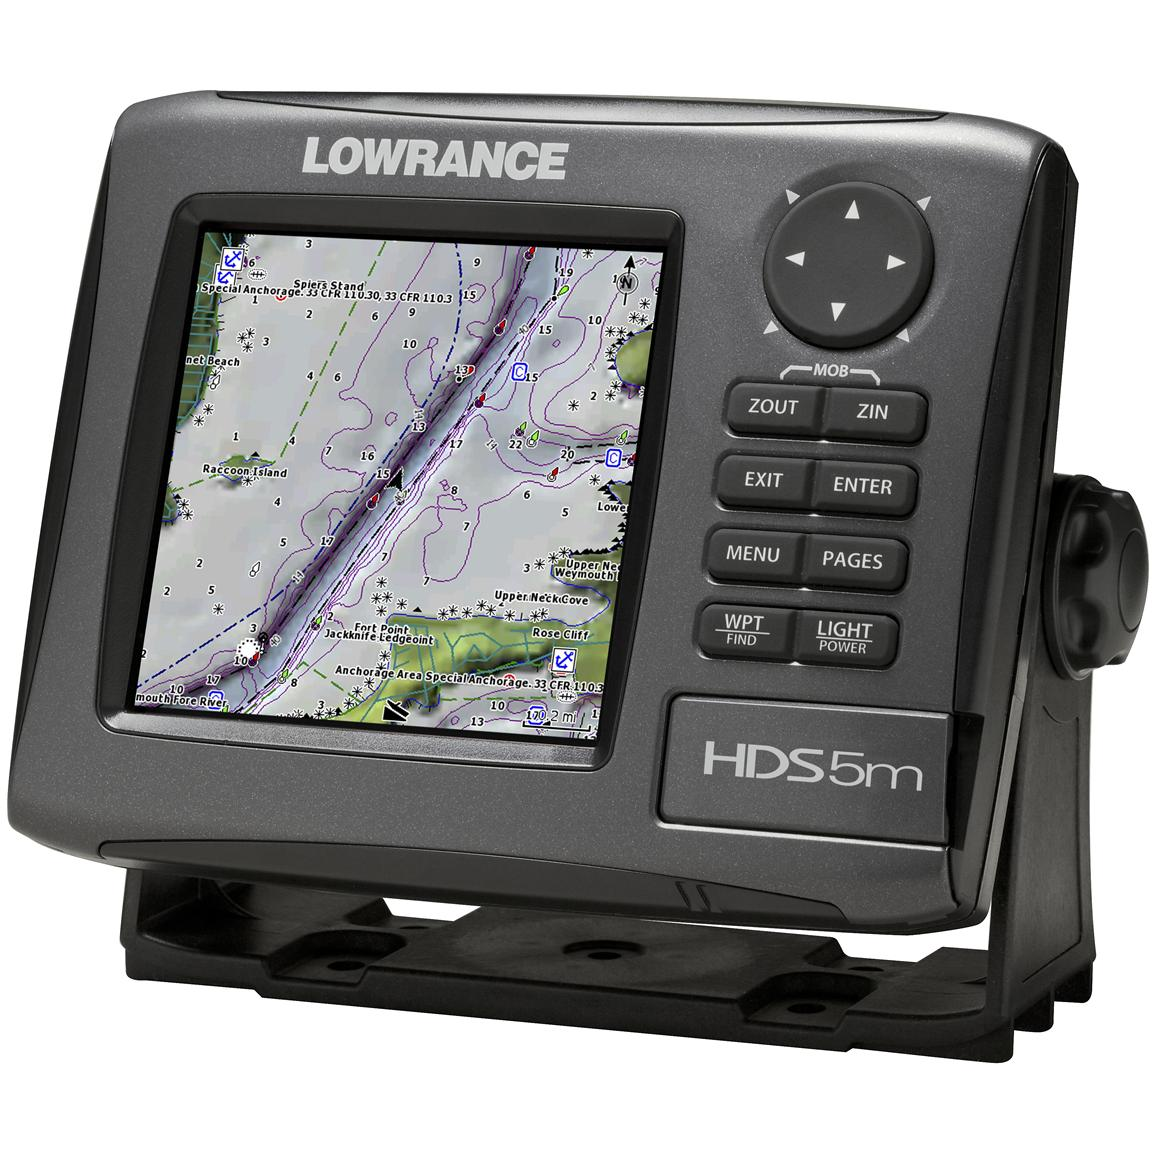 Lowrance® HDS-5m Gen 2 GPS Chartplotter with Nautic Insight™ Maps